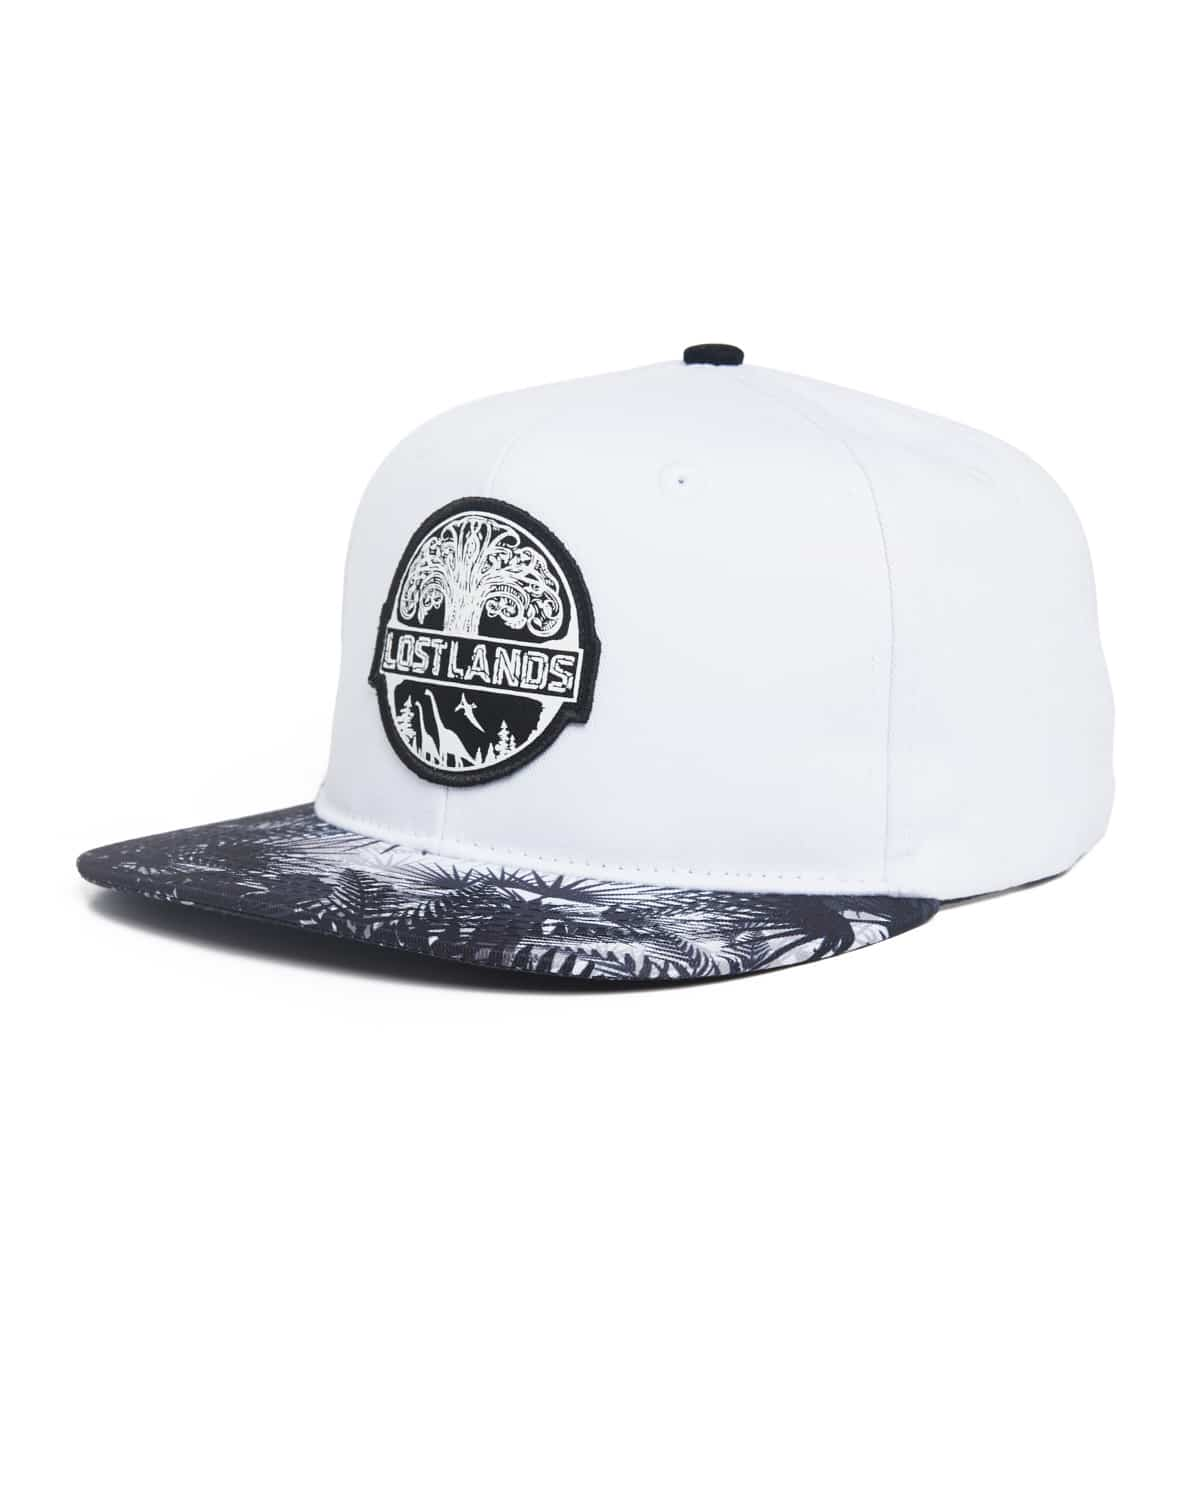 2018235e2 Lost Lands 'Tree of Life' Snapback (White/Black)